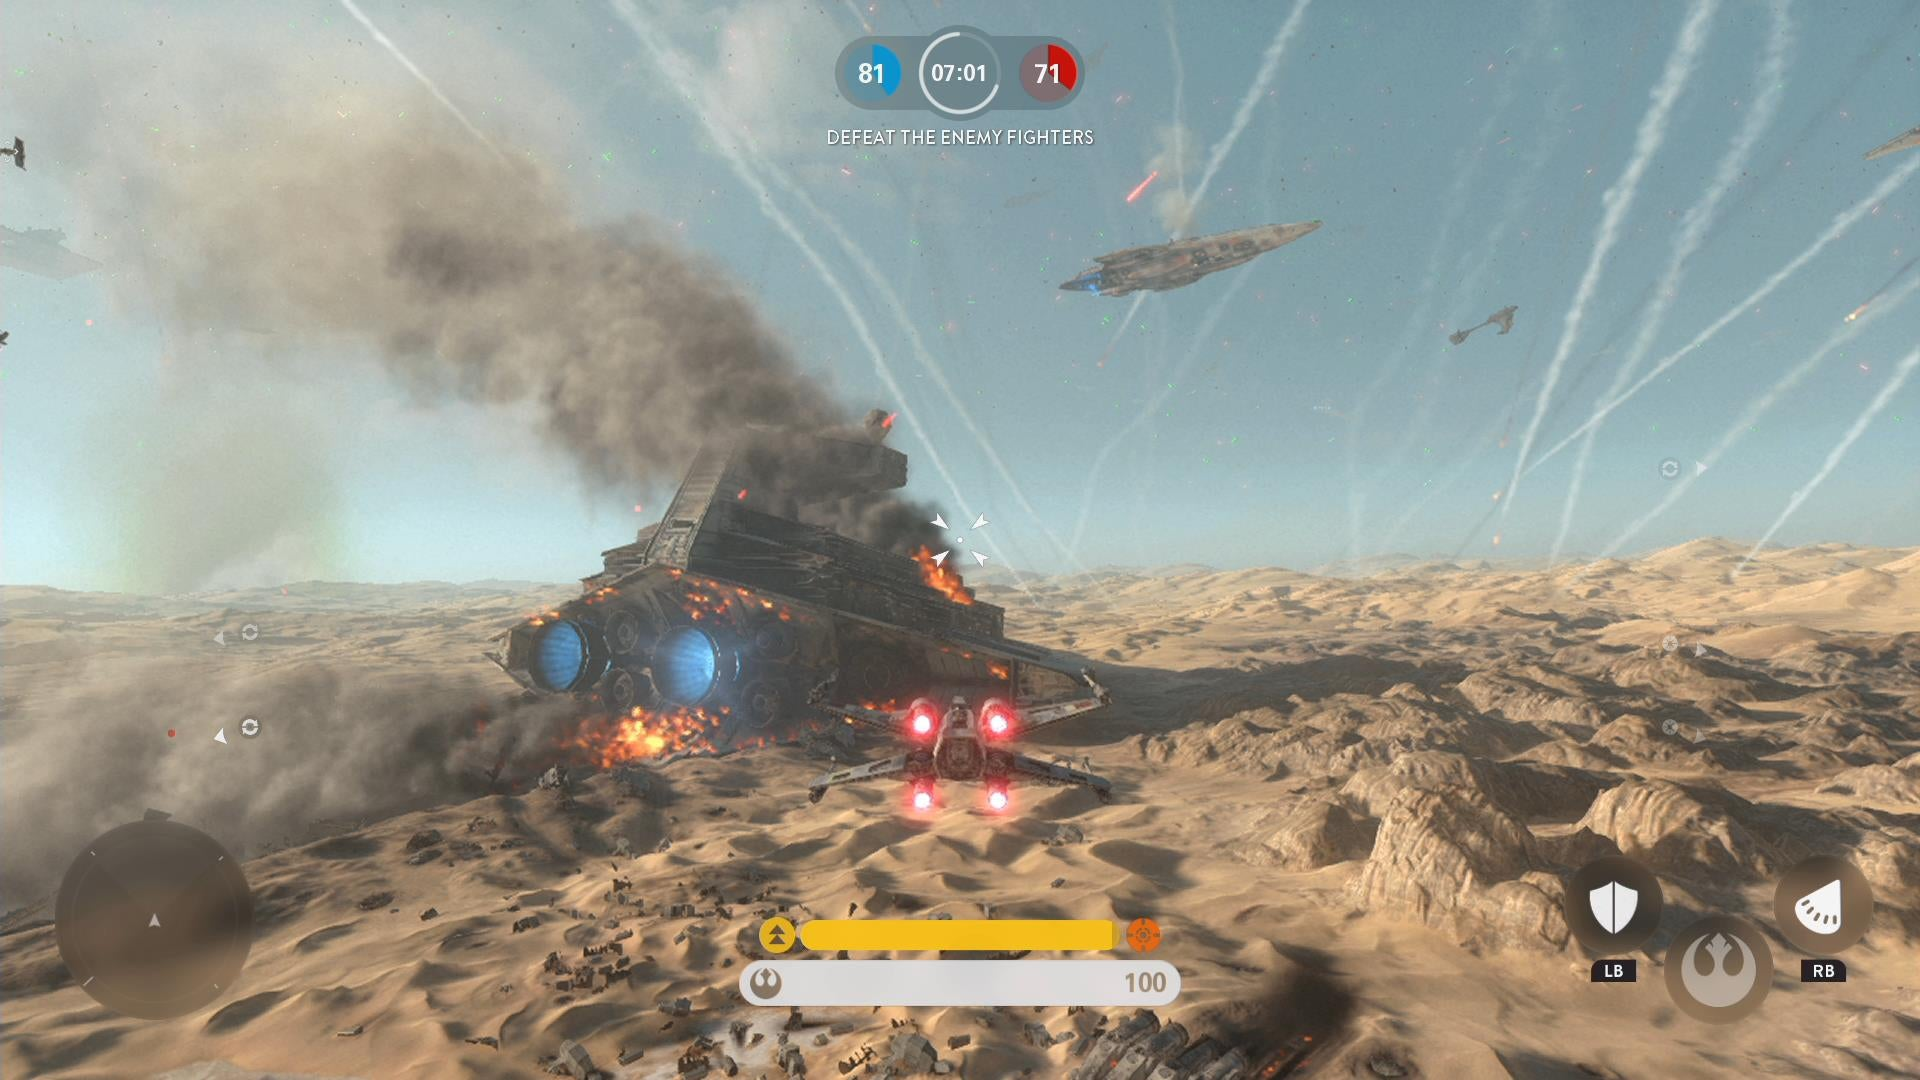 A Video Game Tour Of The New Star Wars Planet Jakku